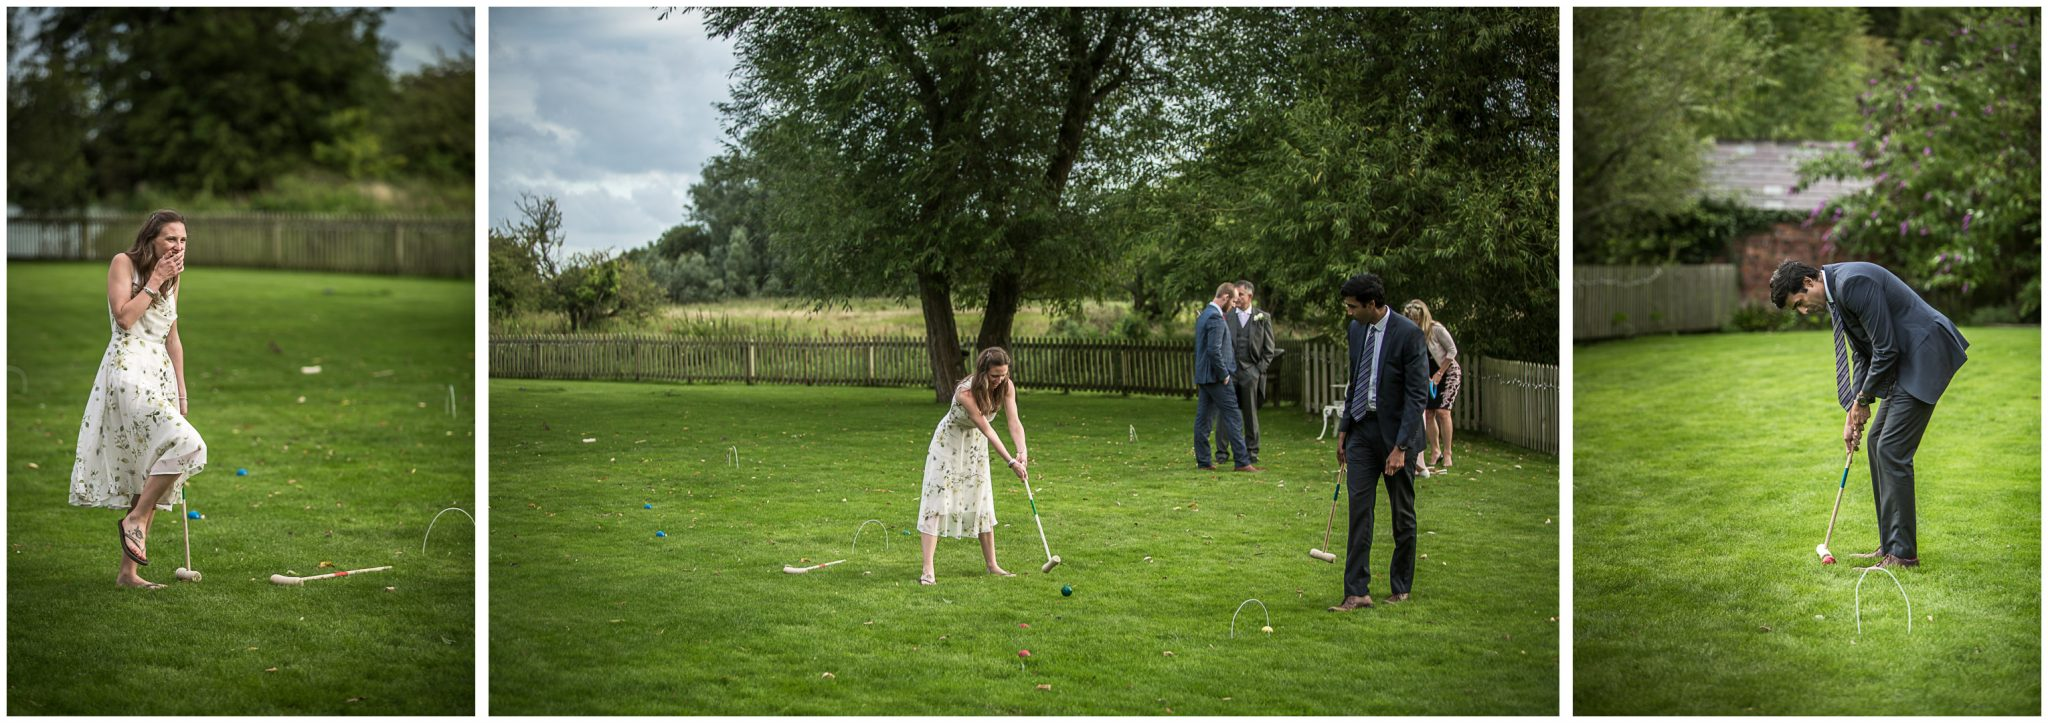 Sopley Mill wedding photography croquet on the lawn